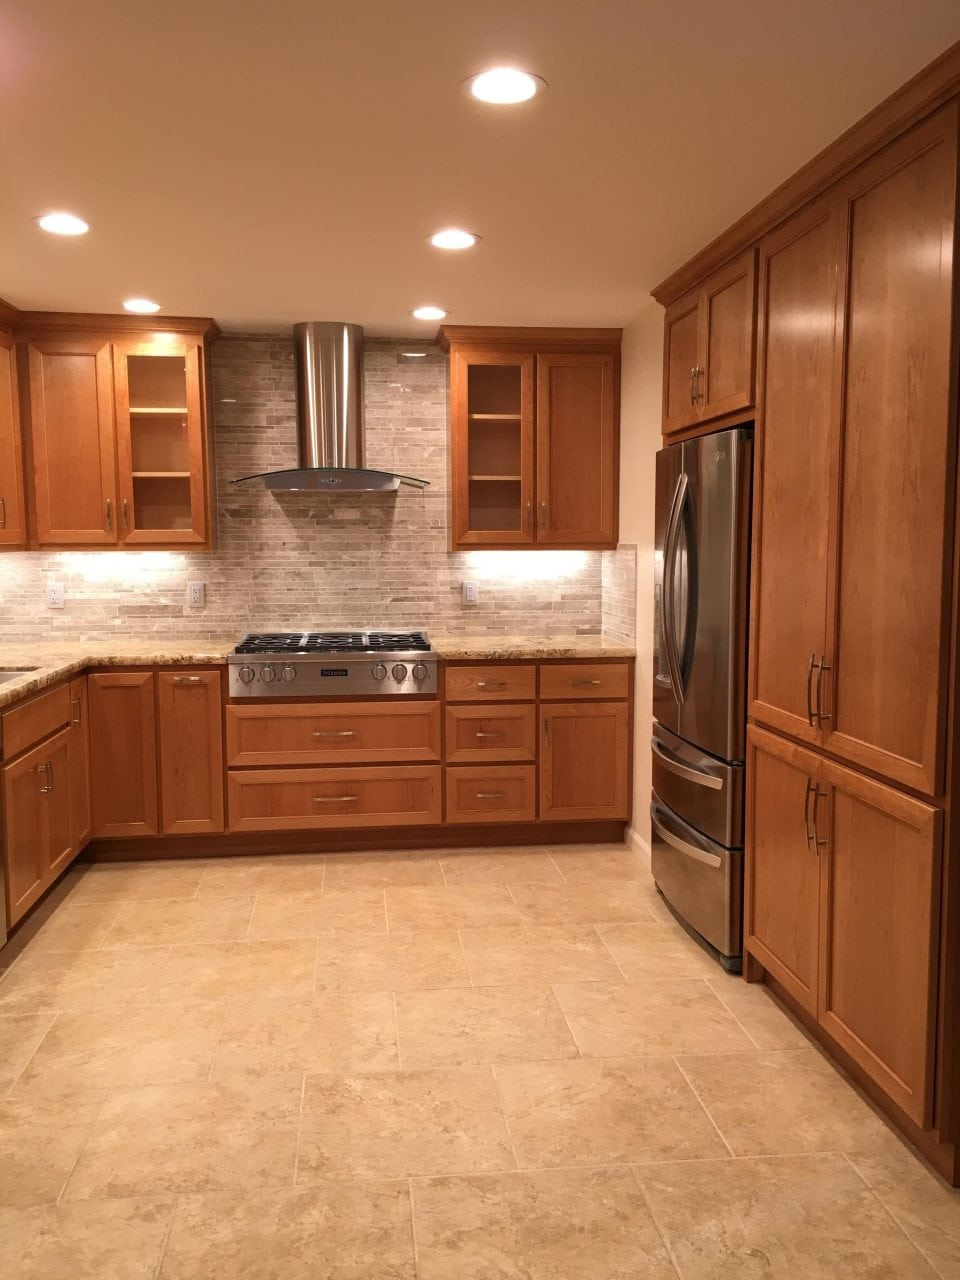 large wooden kitchen cabinets